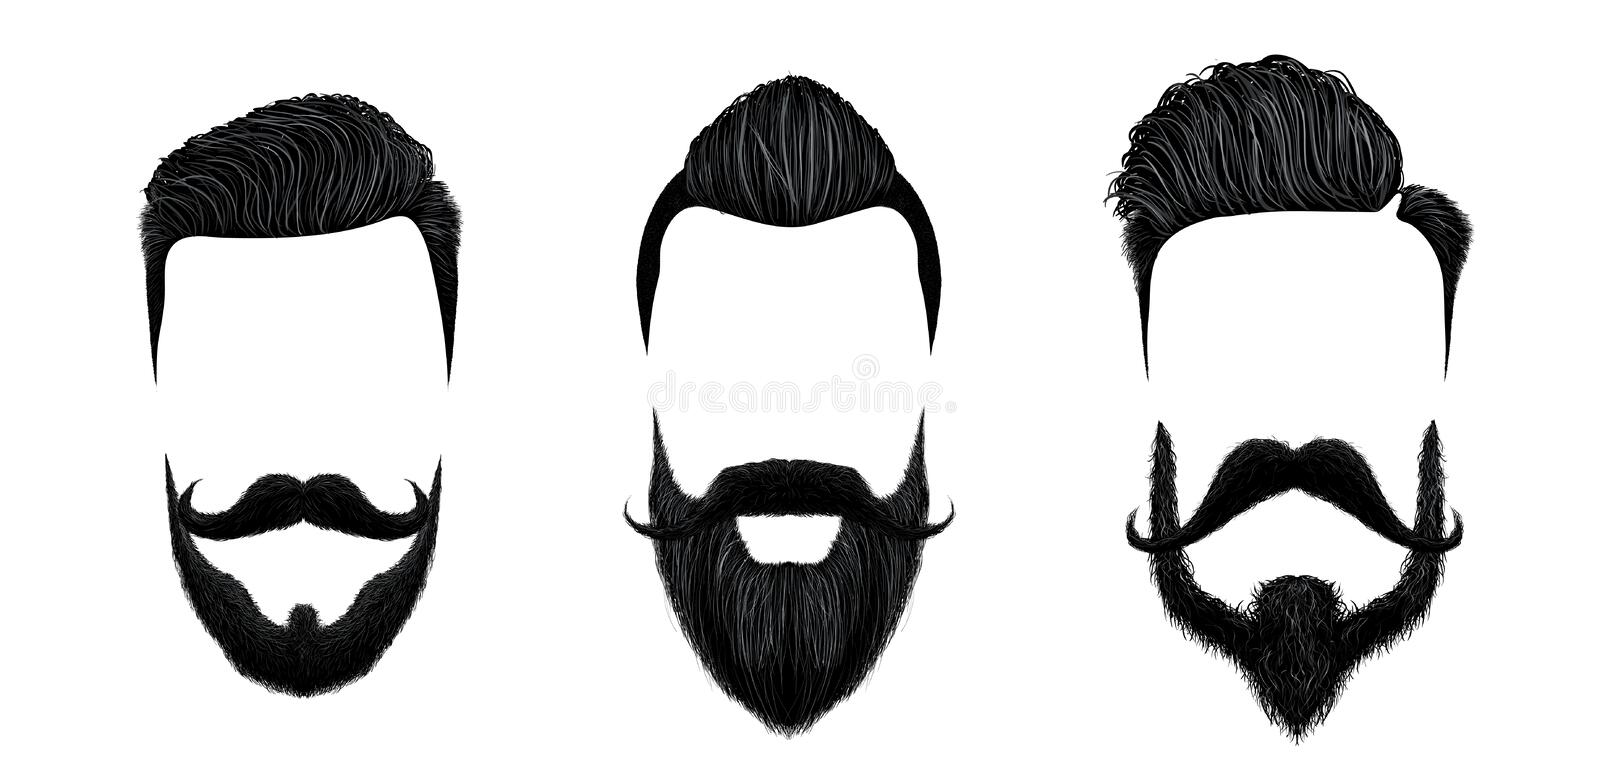 Men hair and moustache styling. Vintage gentleman haircut, beauty beard and fashion mustaches styles vector illustration royalty free illustration